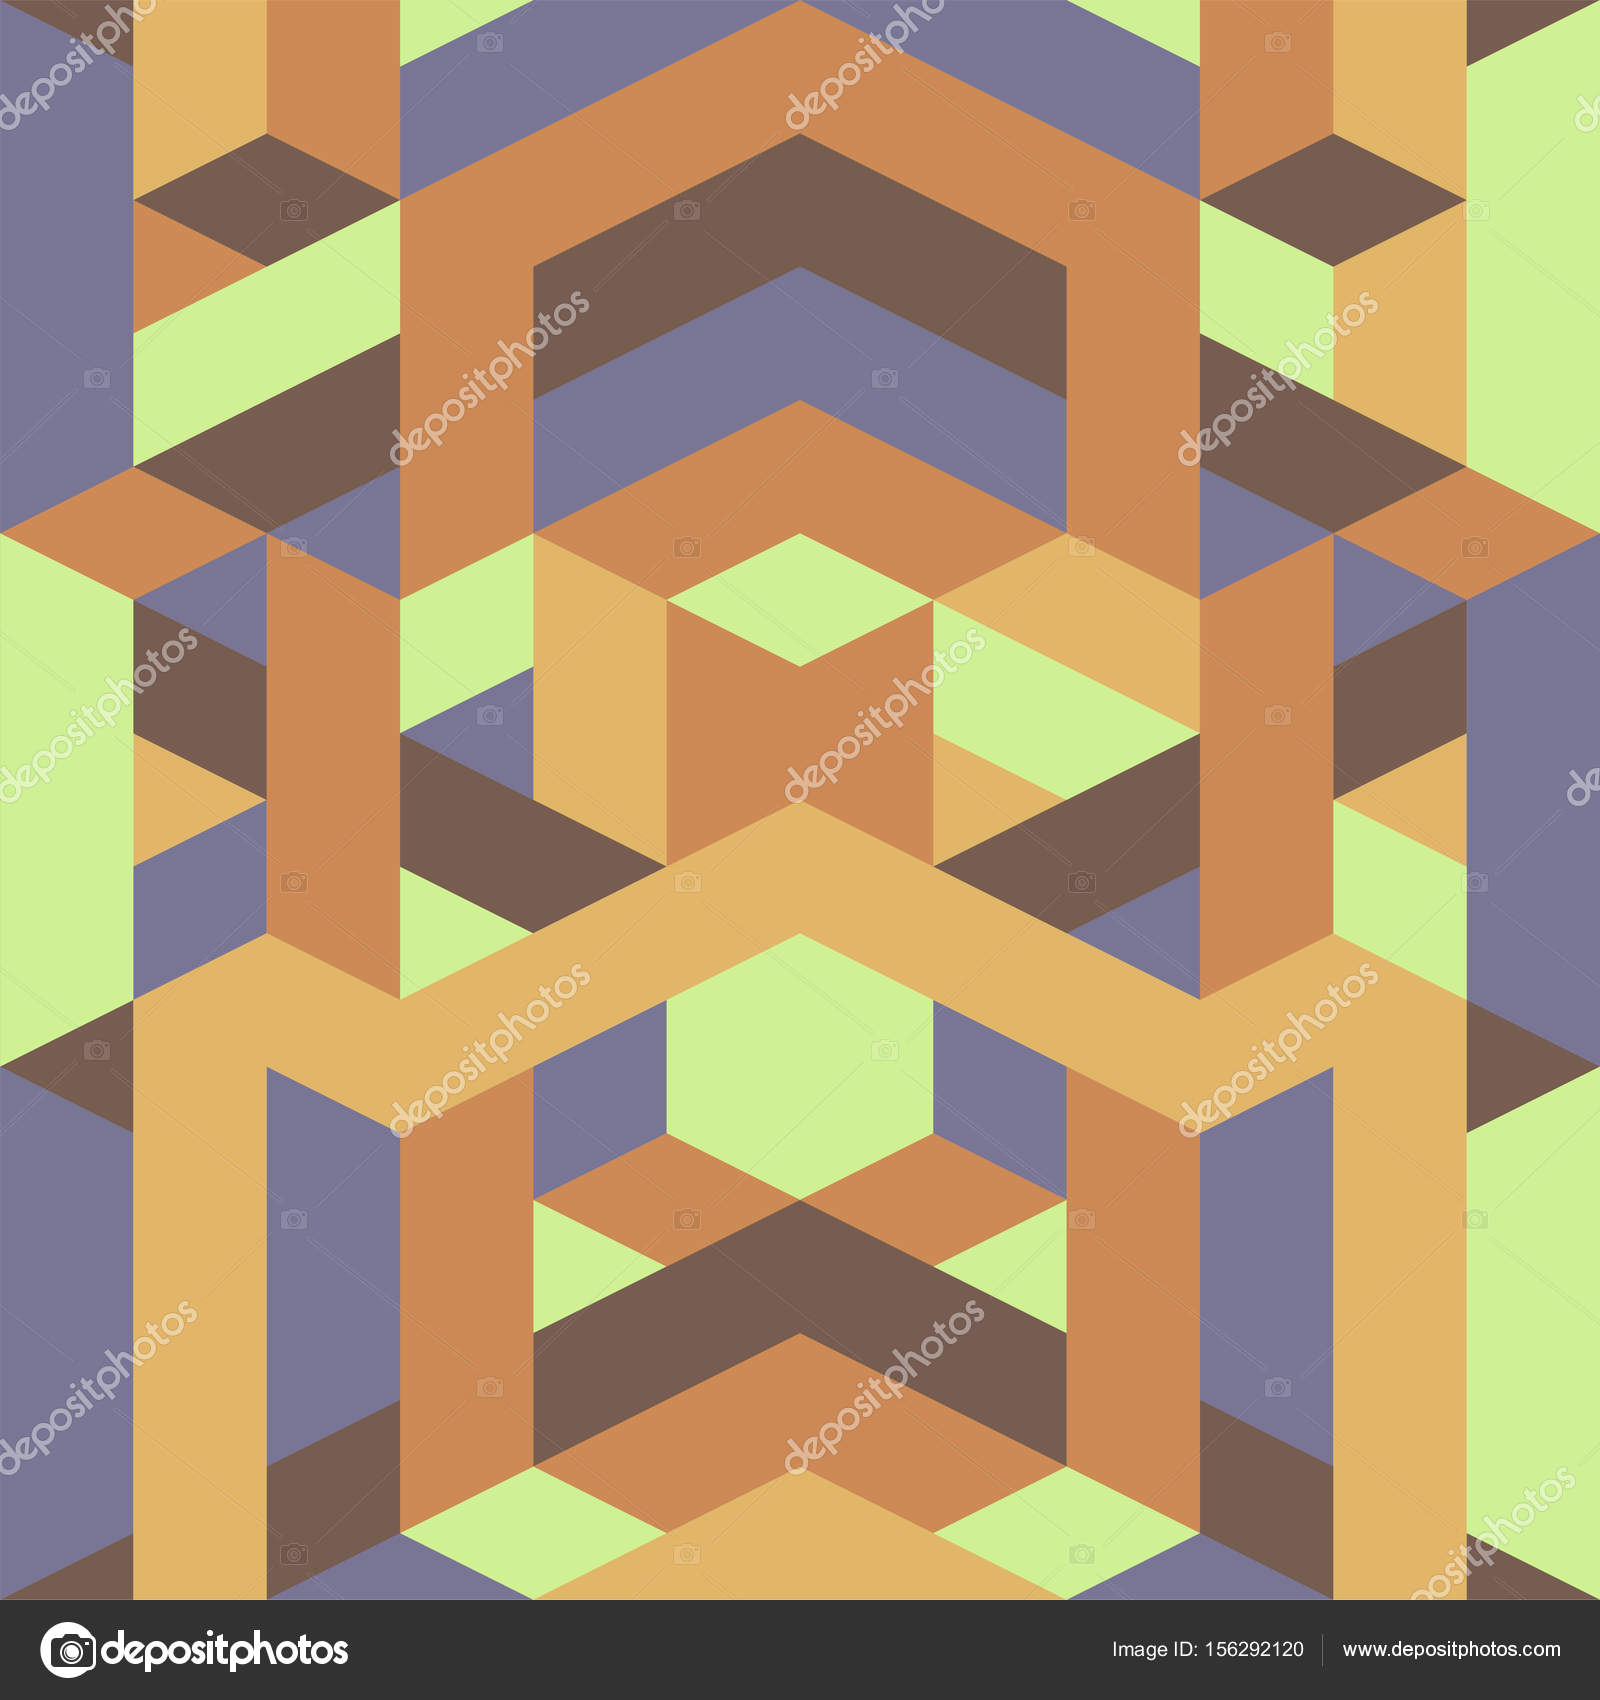 abstract retro geometric pattern yellow brown earth tone color